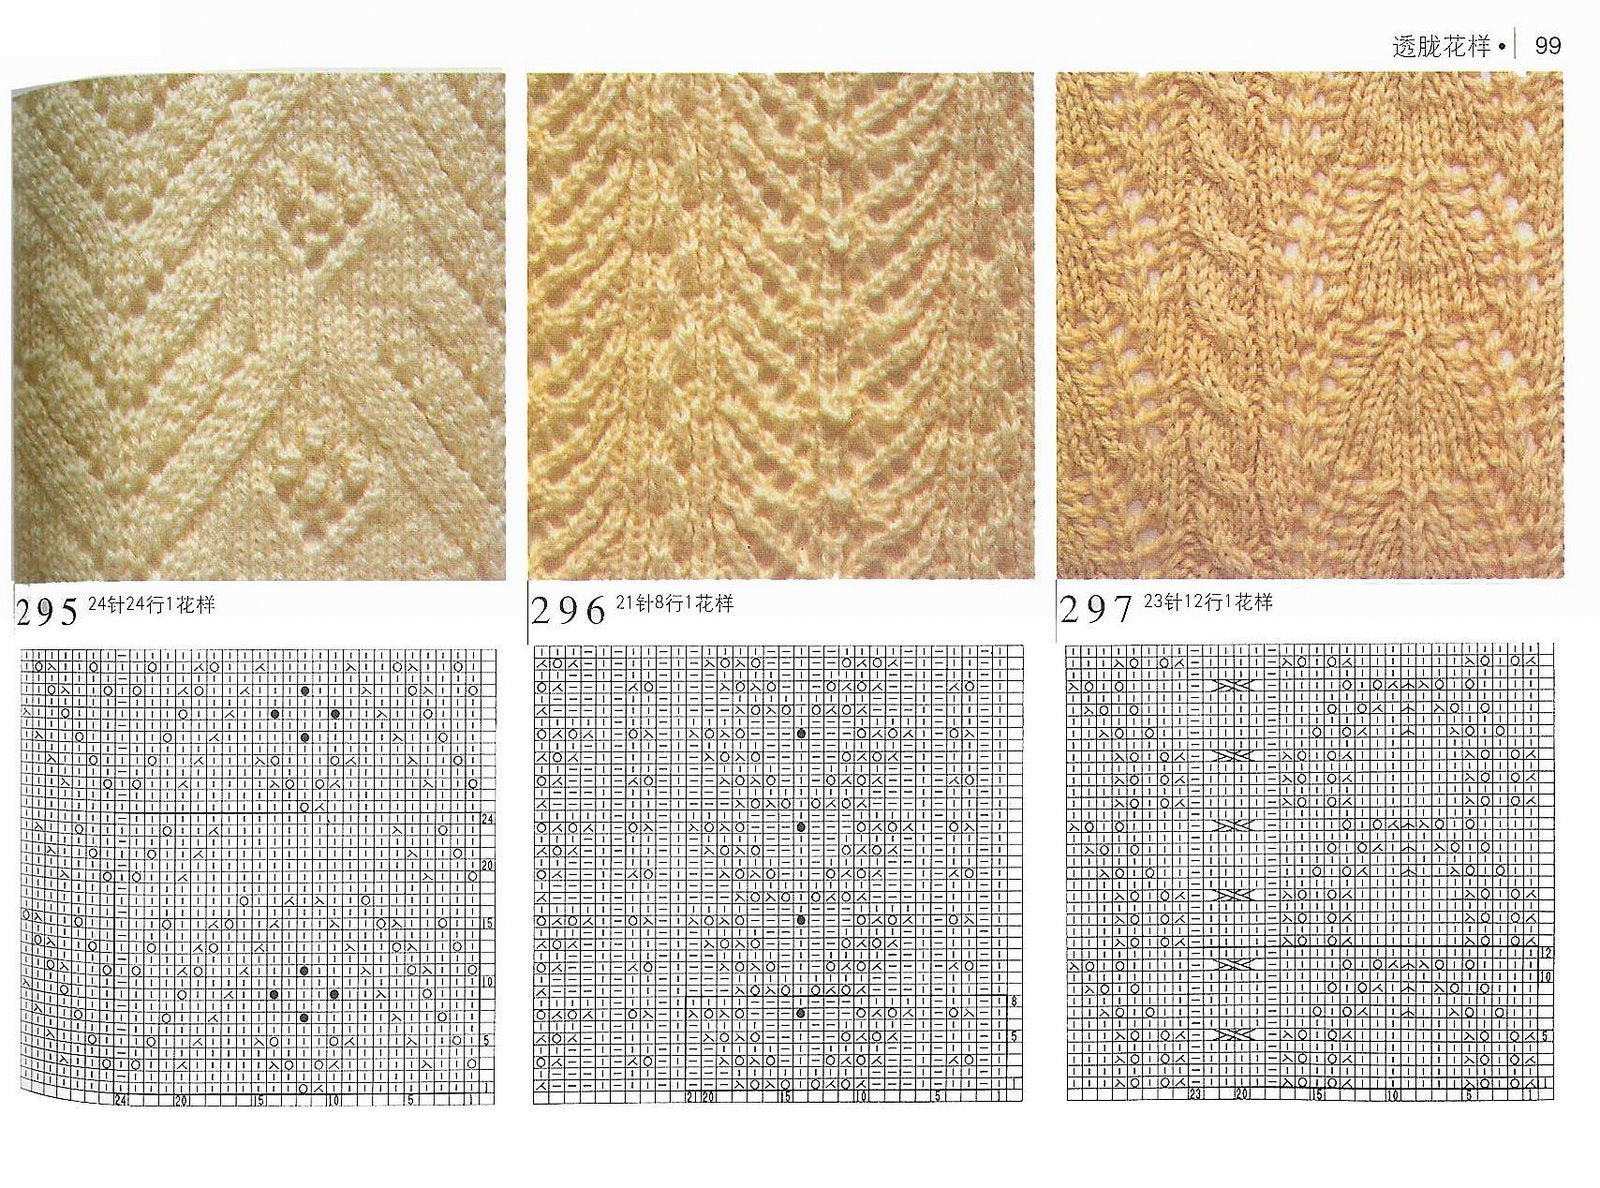 Knitting patterns for your jumper project